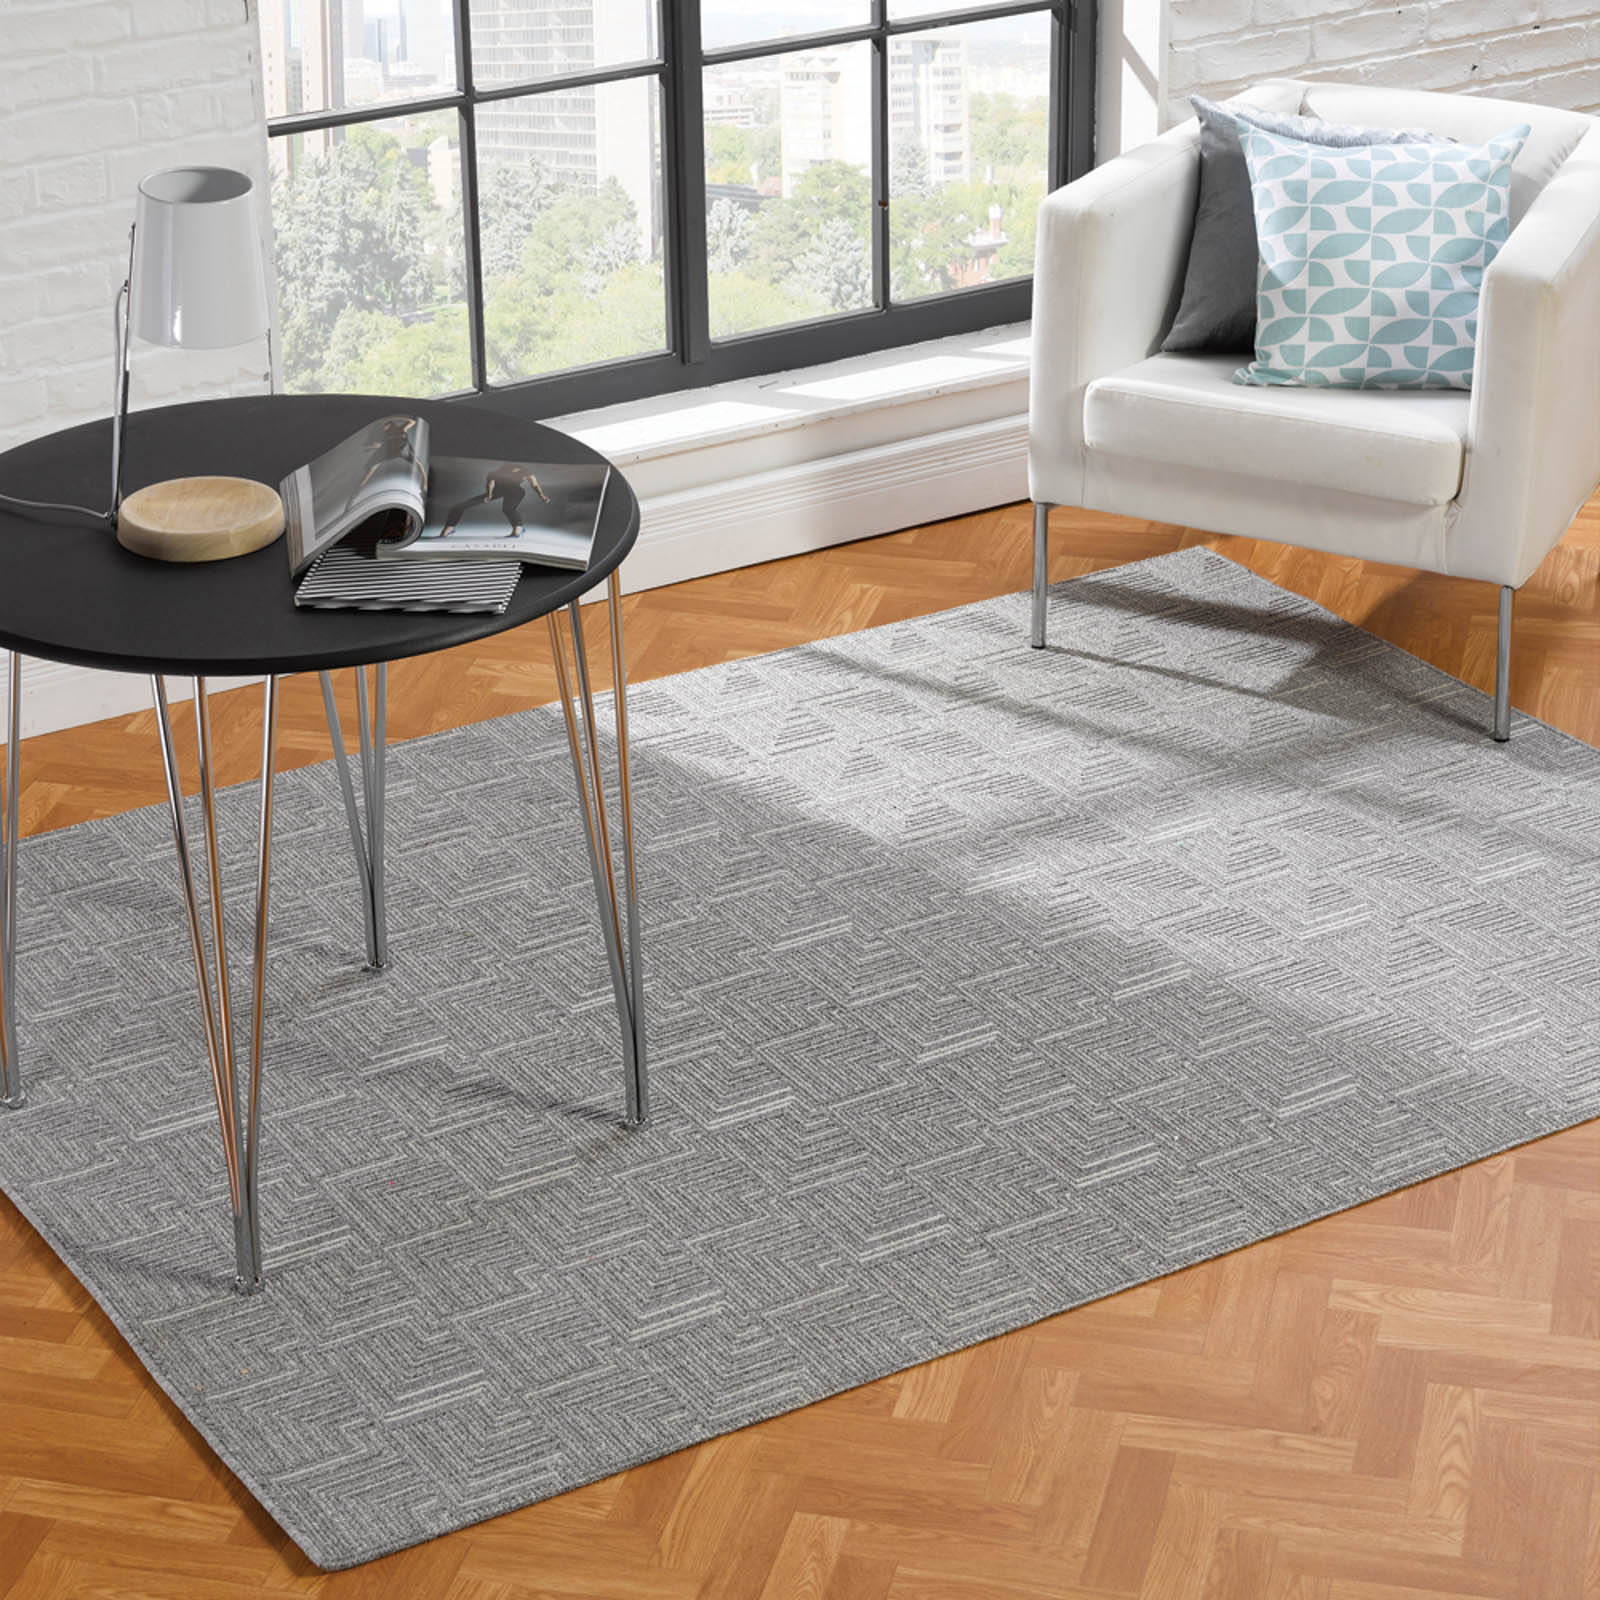 Skyline Pinnacle Rugs in Grey